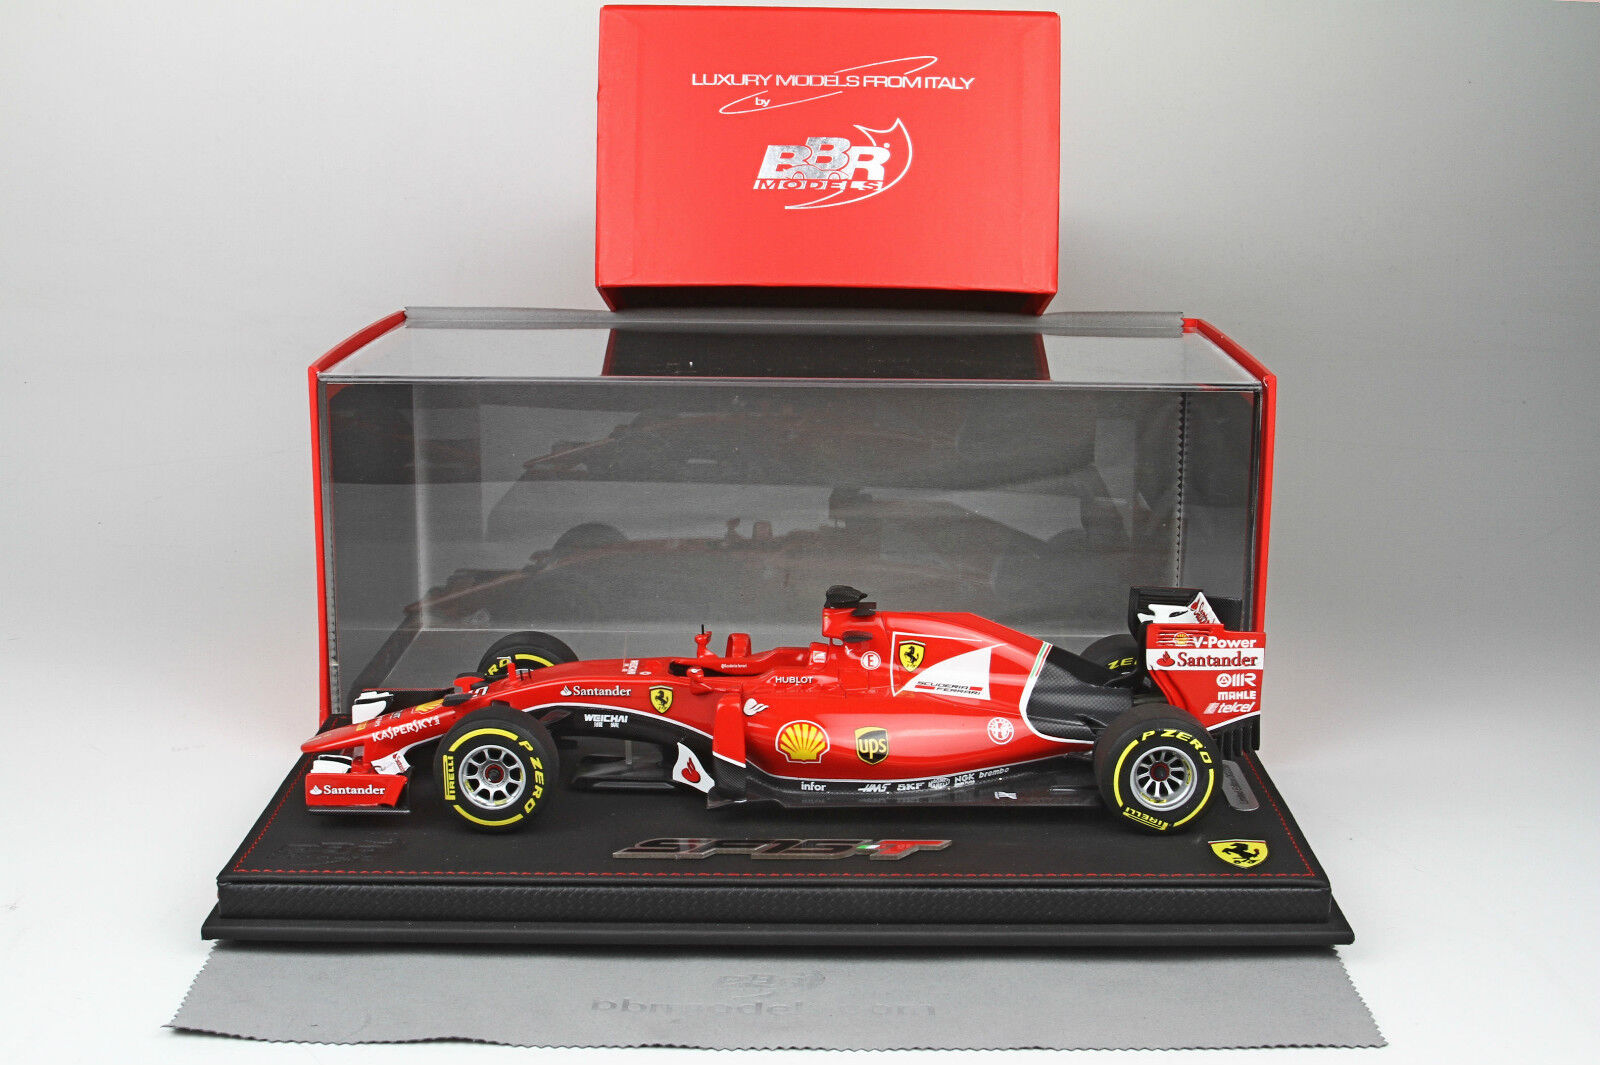 Ferrari SF15-T Winner GP Singapore 2015 2015 2015 Vettel 1/18 lim.ed.250 pcs P18124 BBR | Luxuriant Dans La Conception